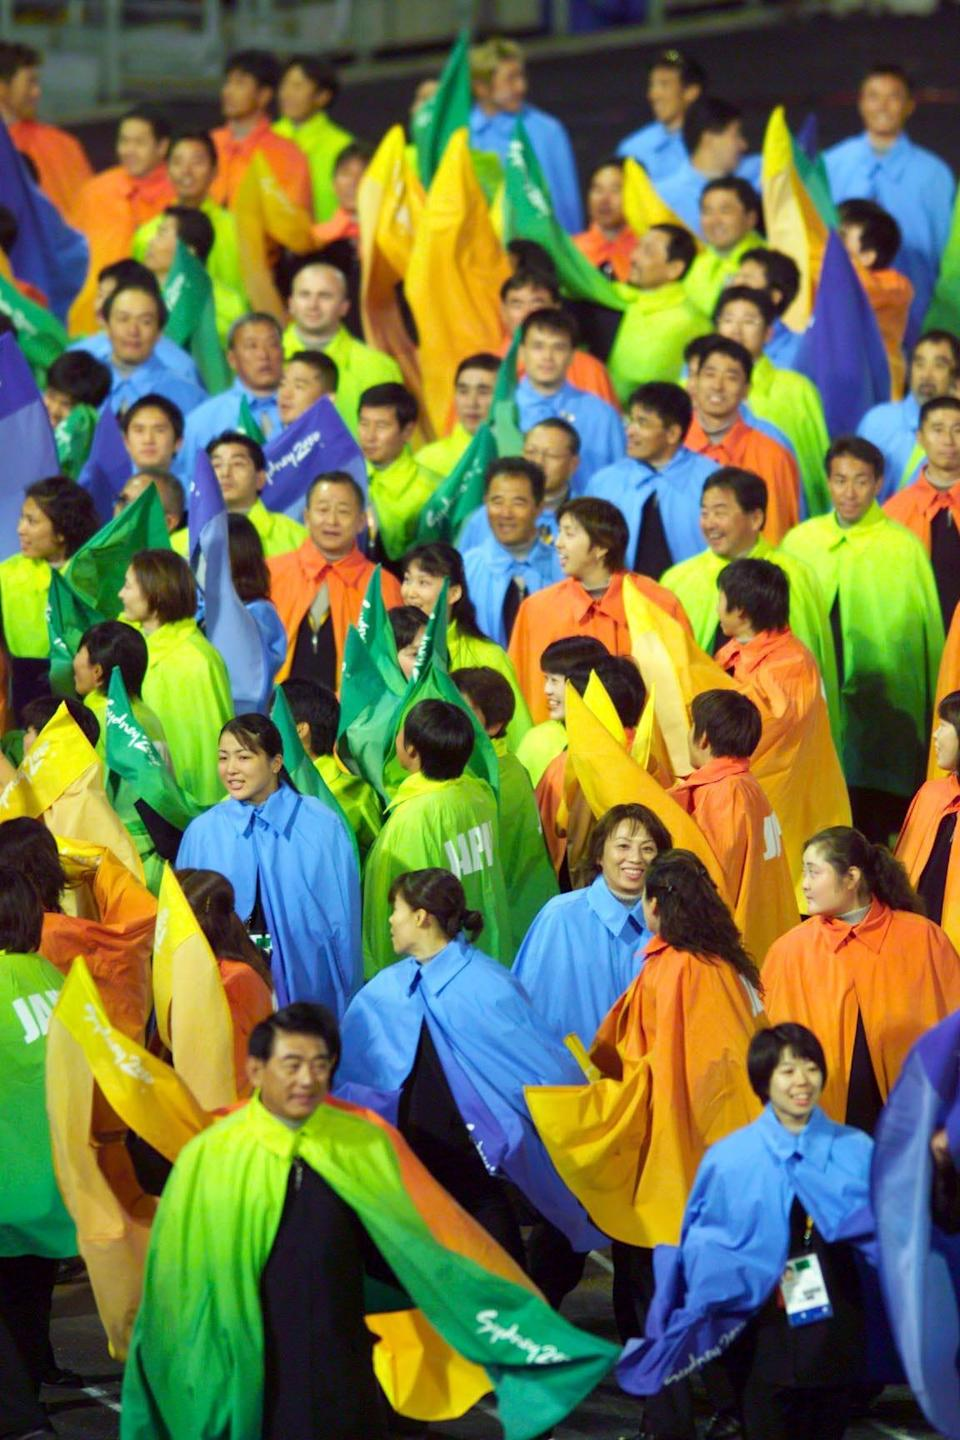 japan's olympic team in 2000 dressed in colorful capes